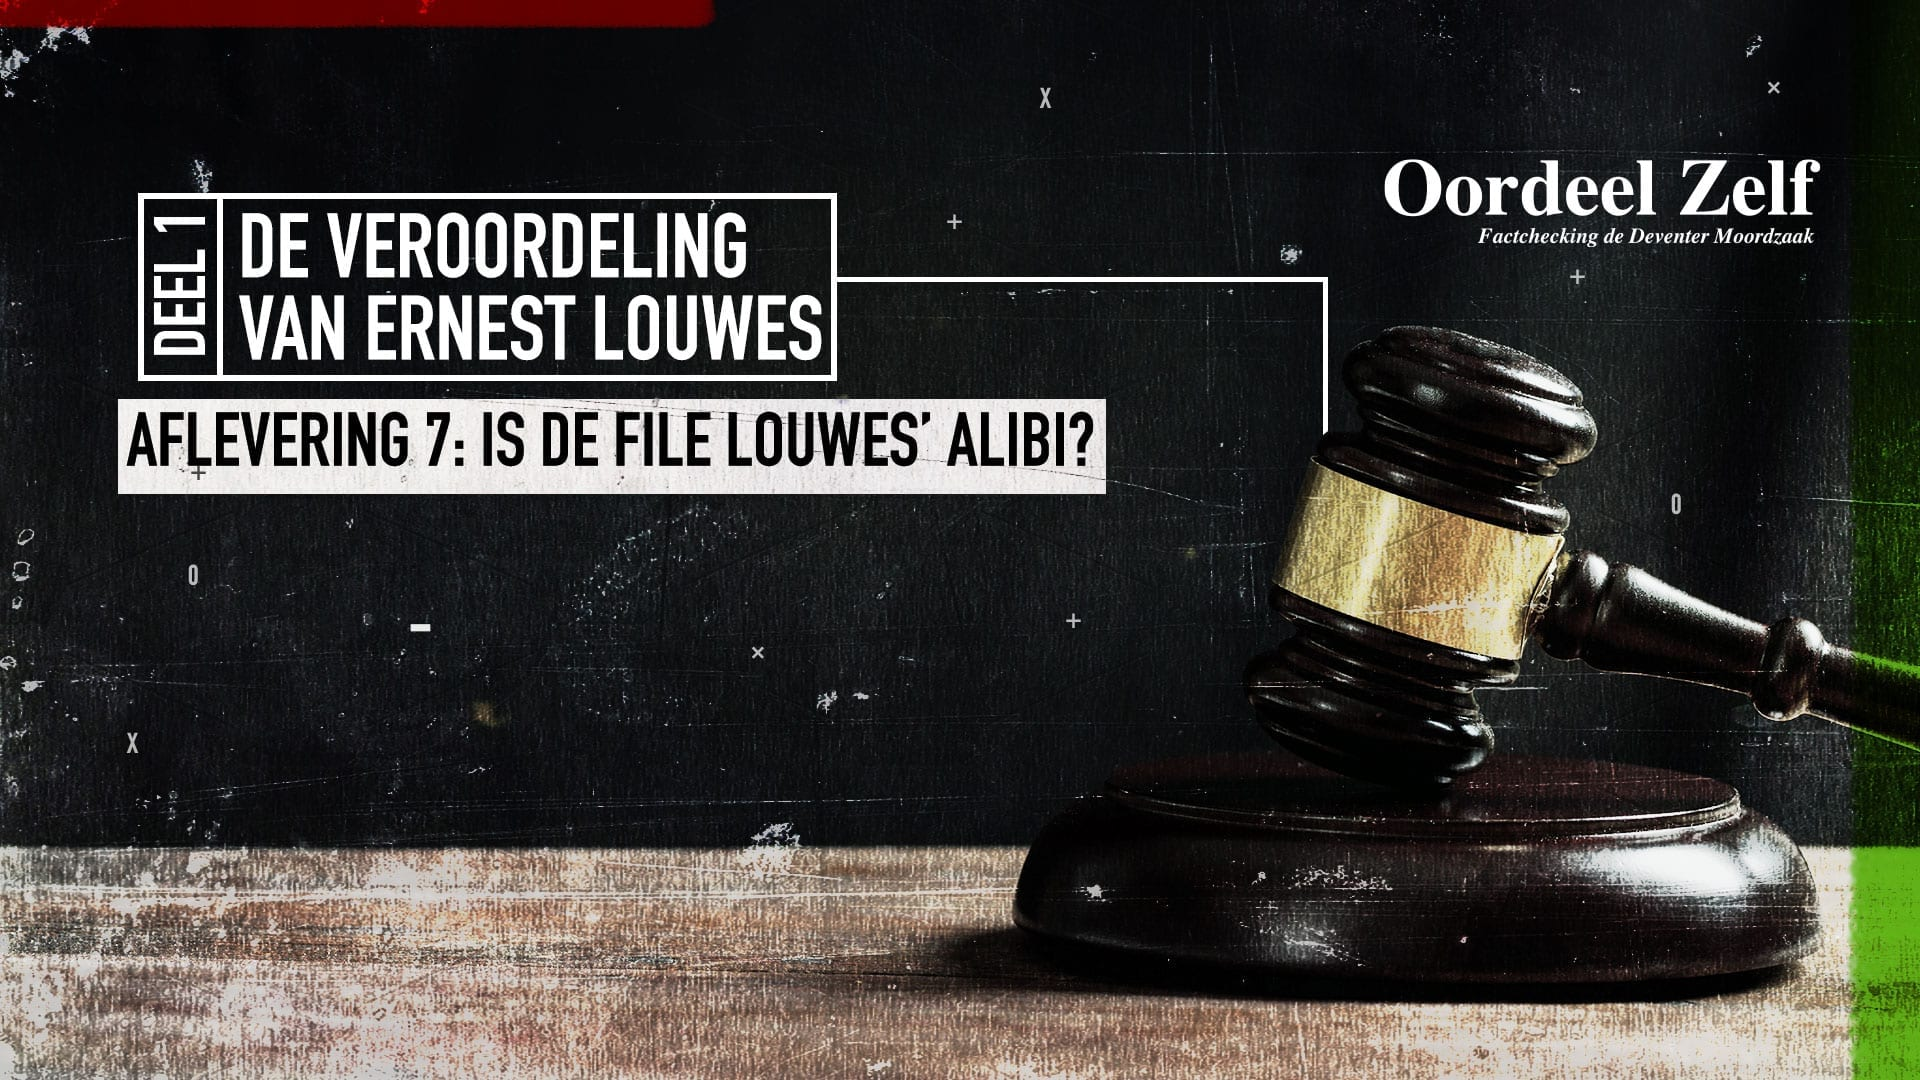 Aflevering 7 - Is de file Louwes alibi?